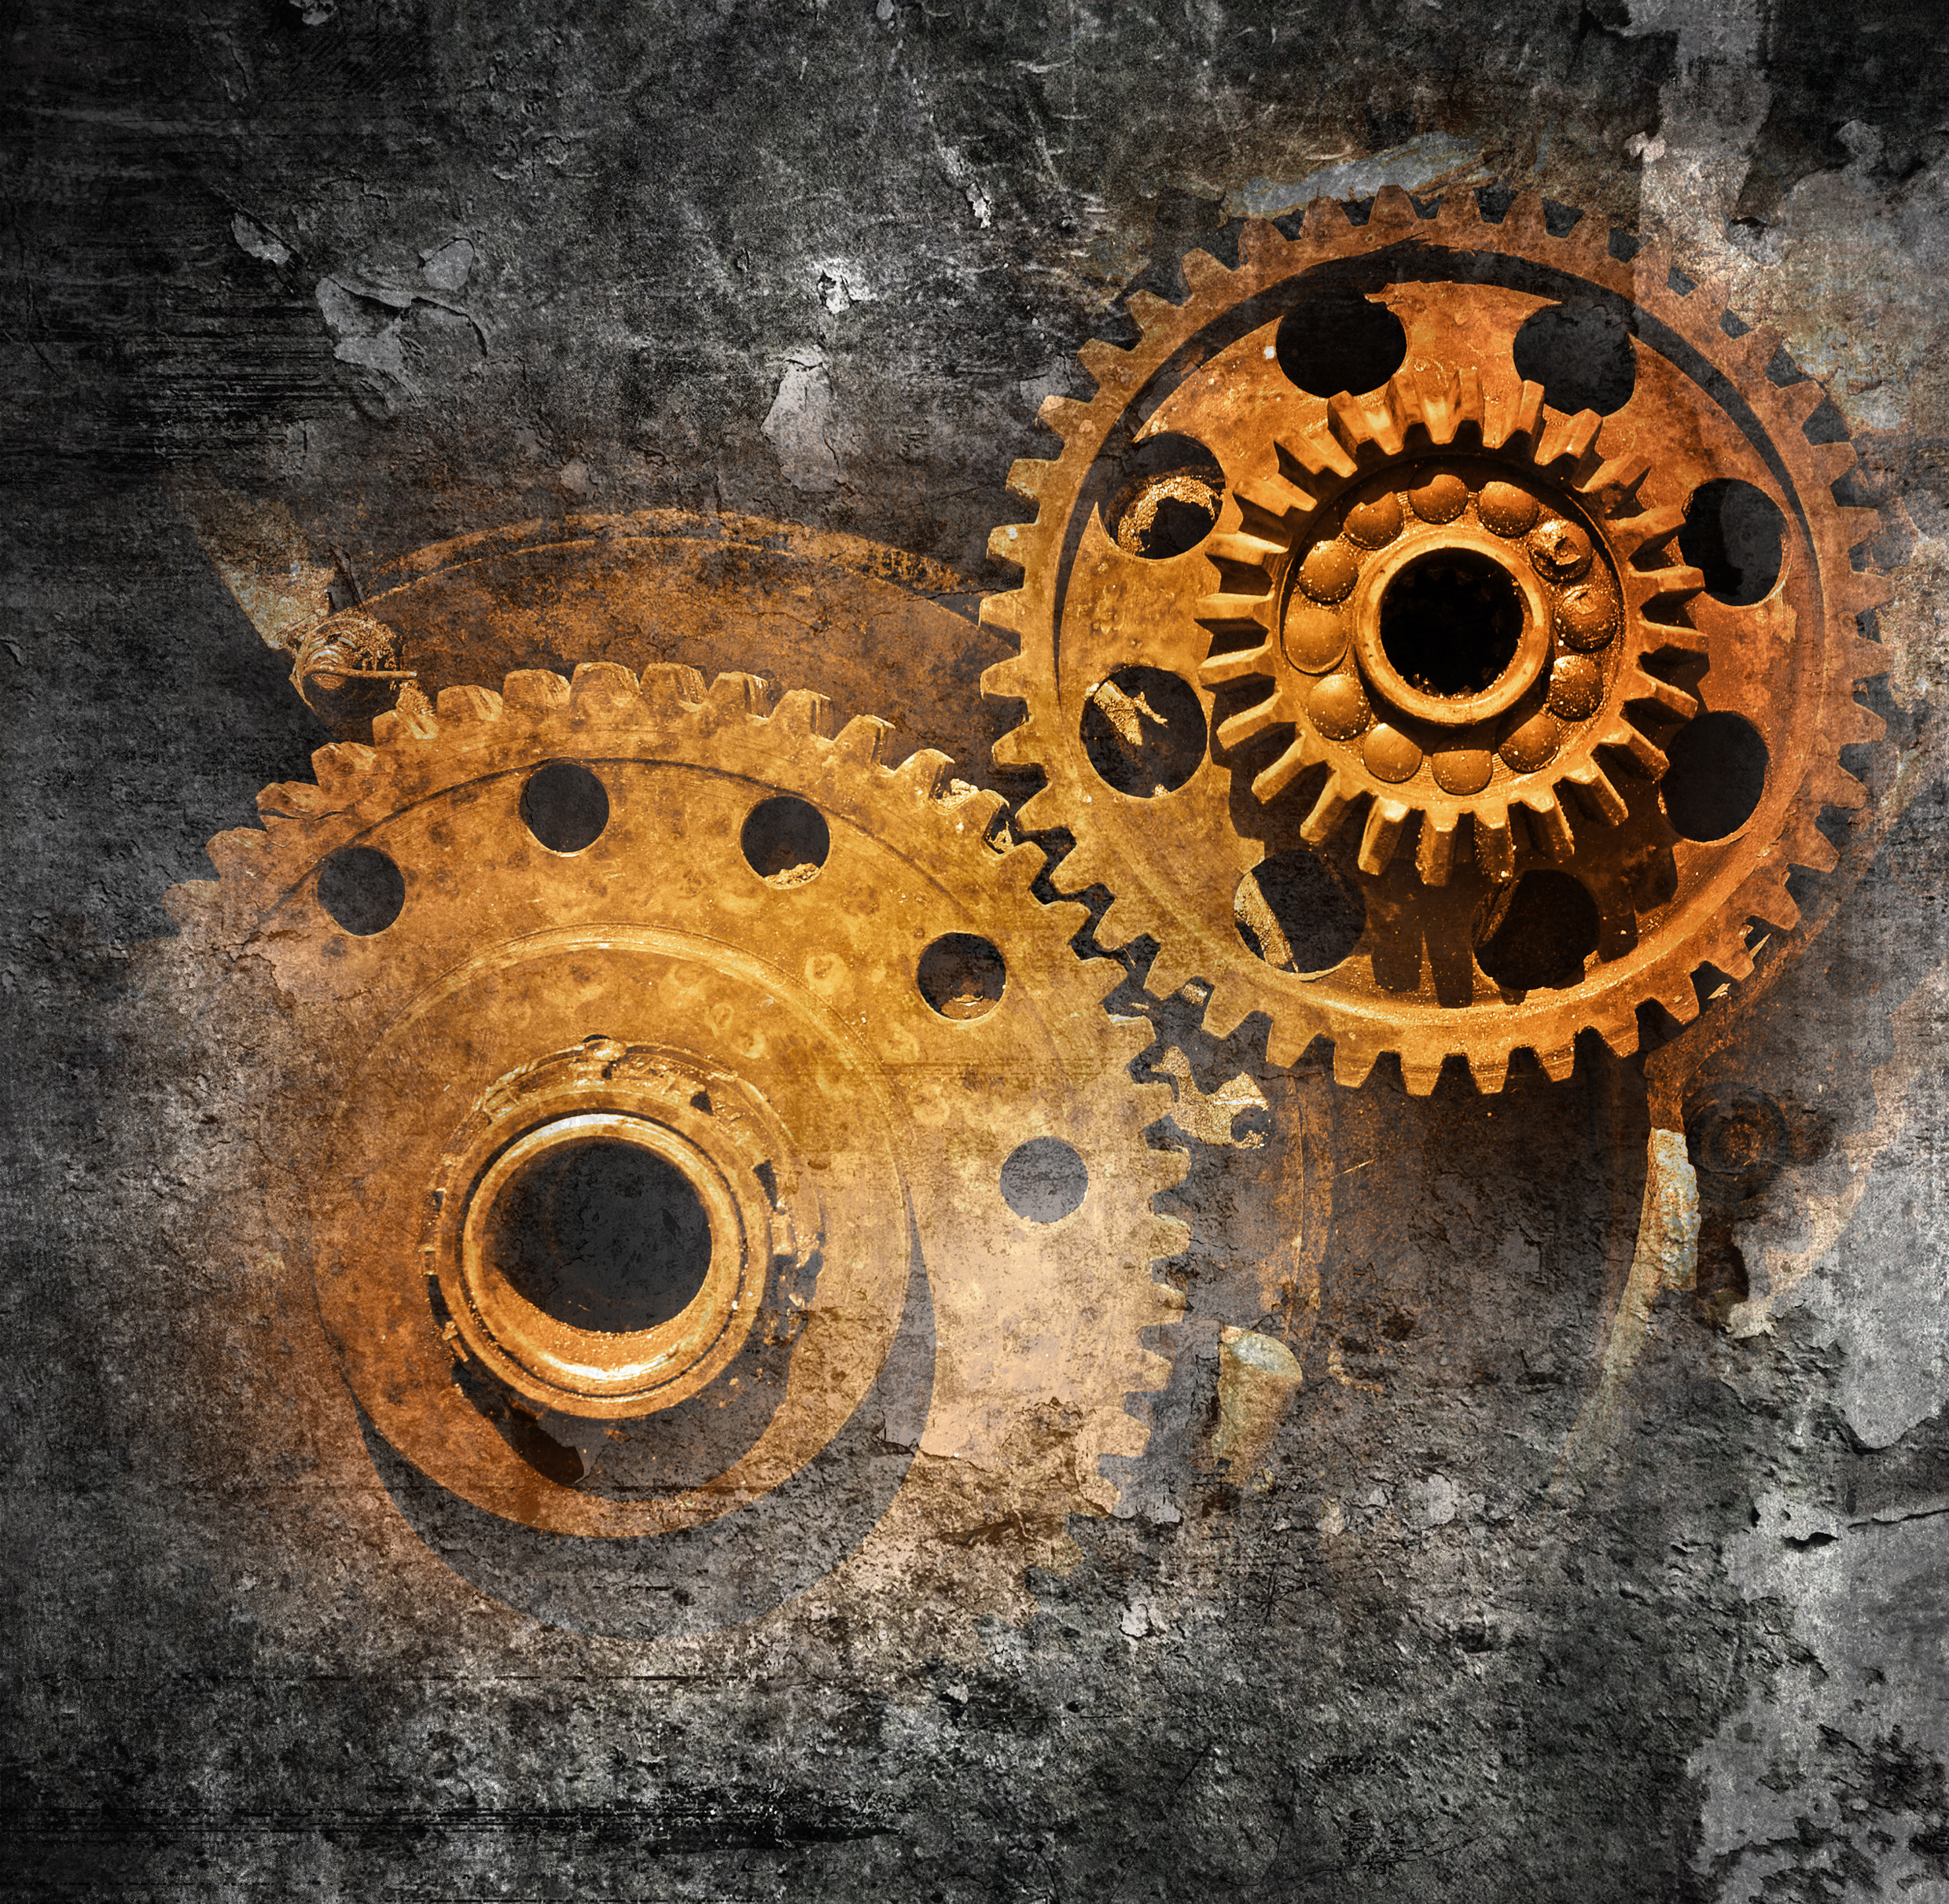 Image of rusty gears in need of VCI corrosion prevention product